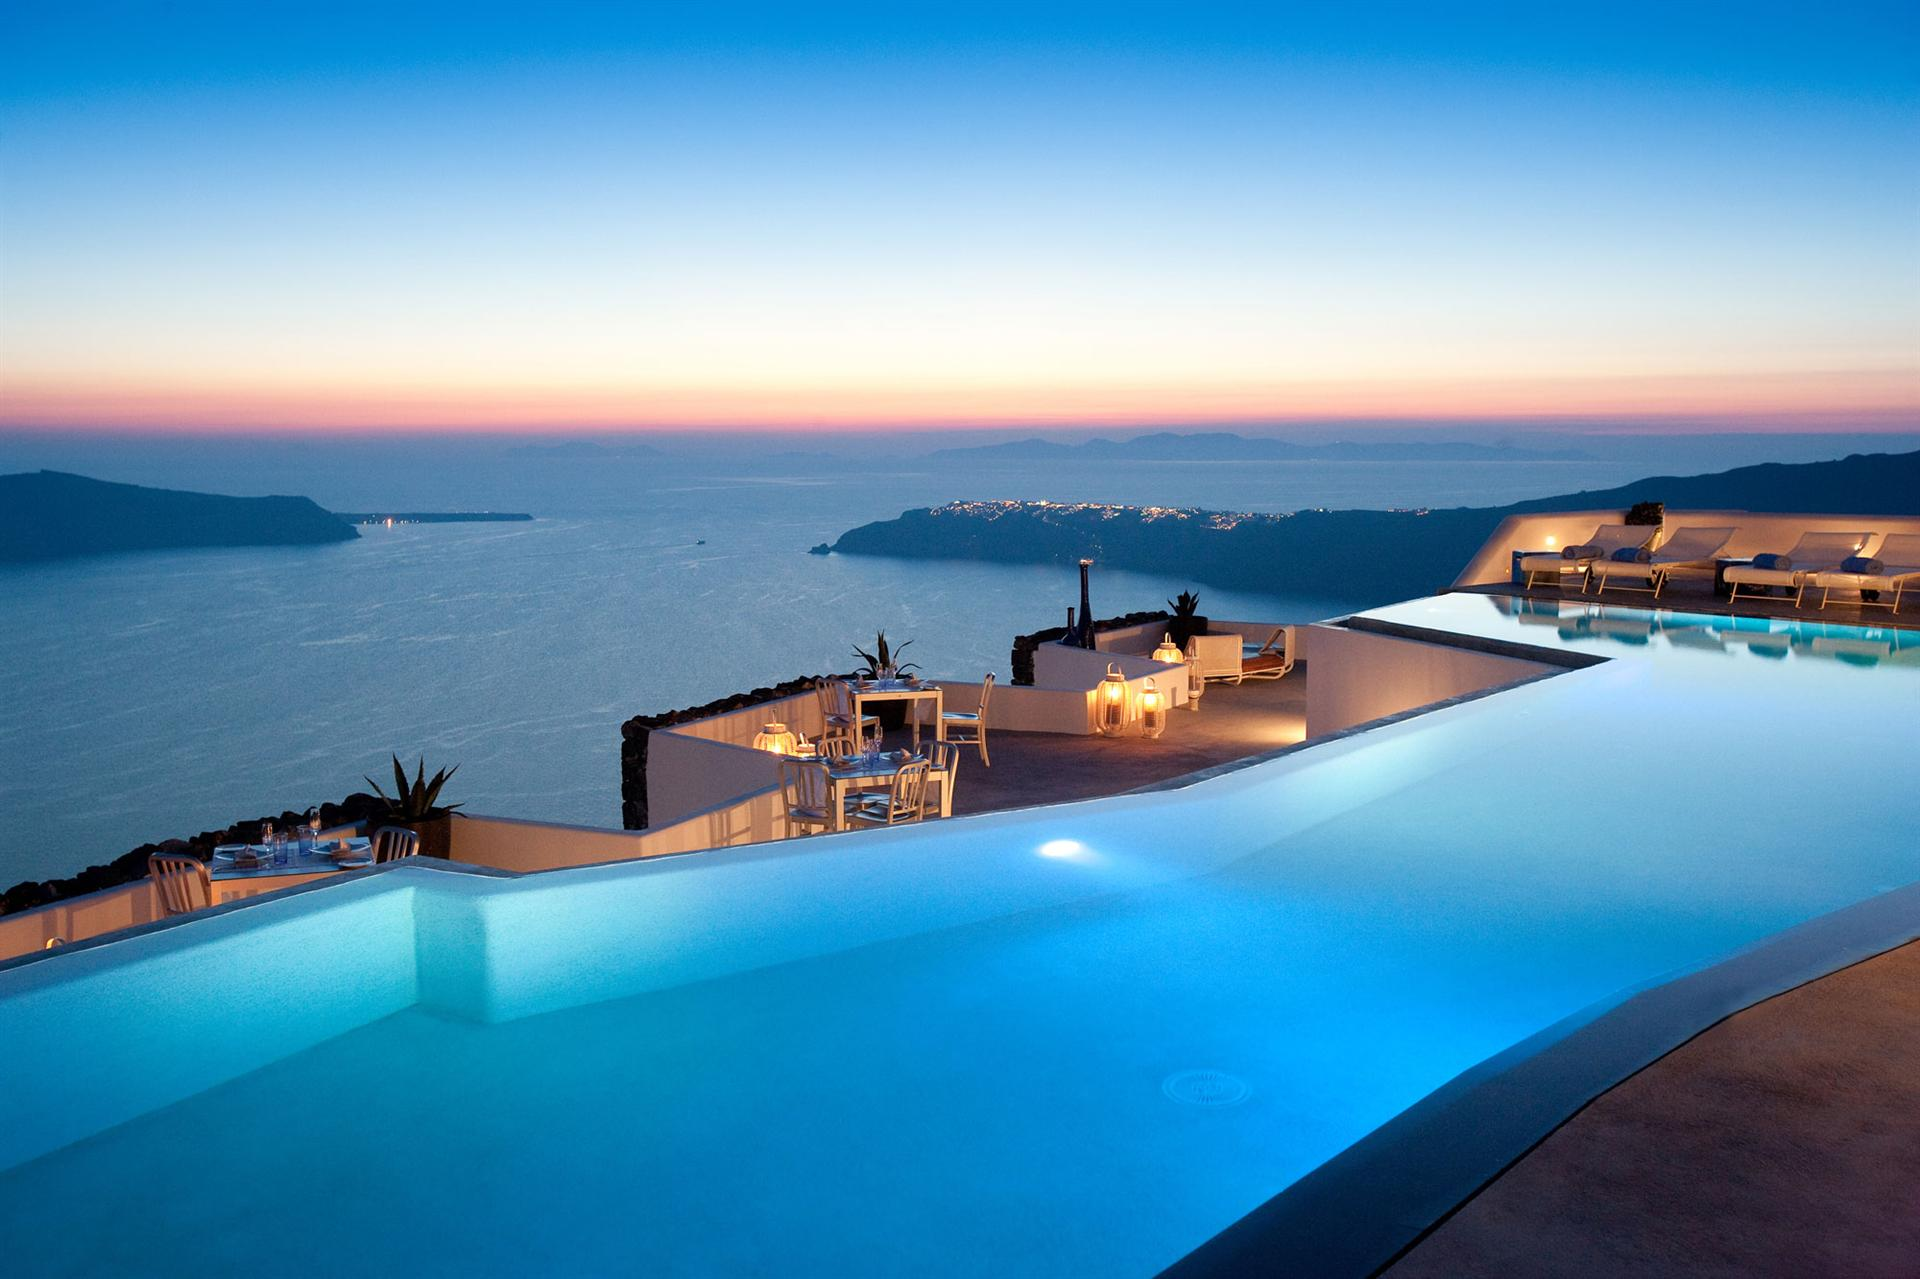 Download Awesome Santorini Greece Wallpaper Europe Resort City Greece 1920x1279